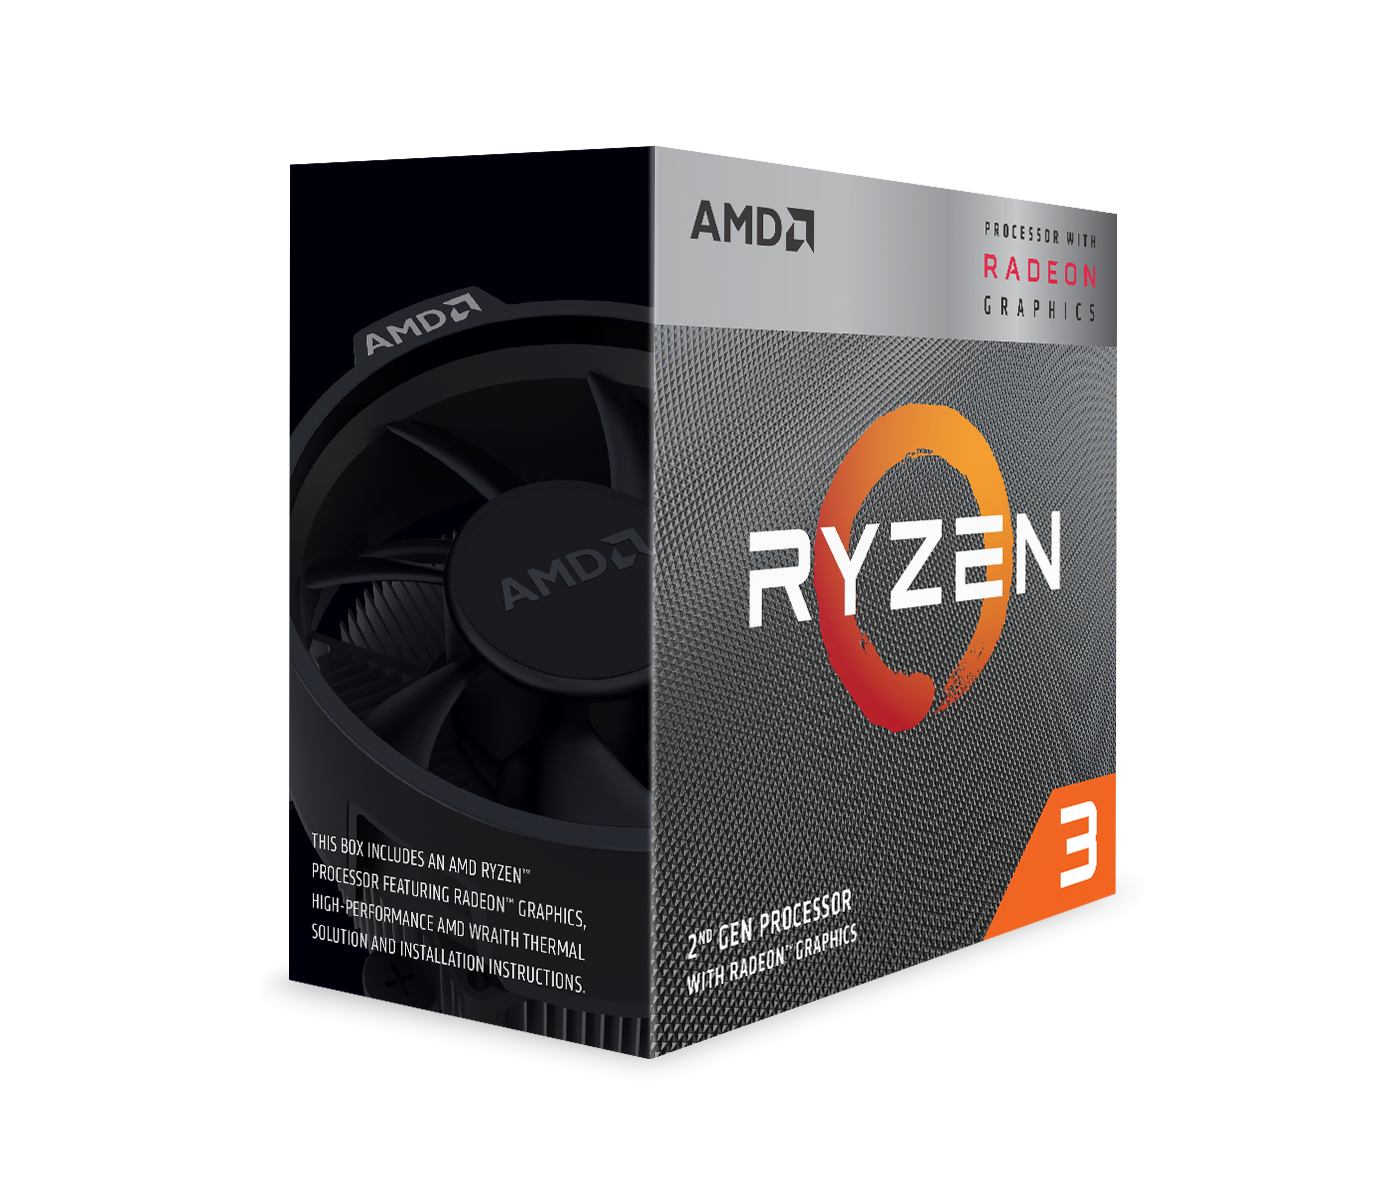 Процесор AMD RYZEN 3 3200G 4-Core 3.6 GHz (4.0 GHz Turbo) 6MB/65W/AM4/BOX